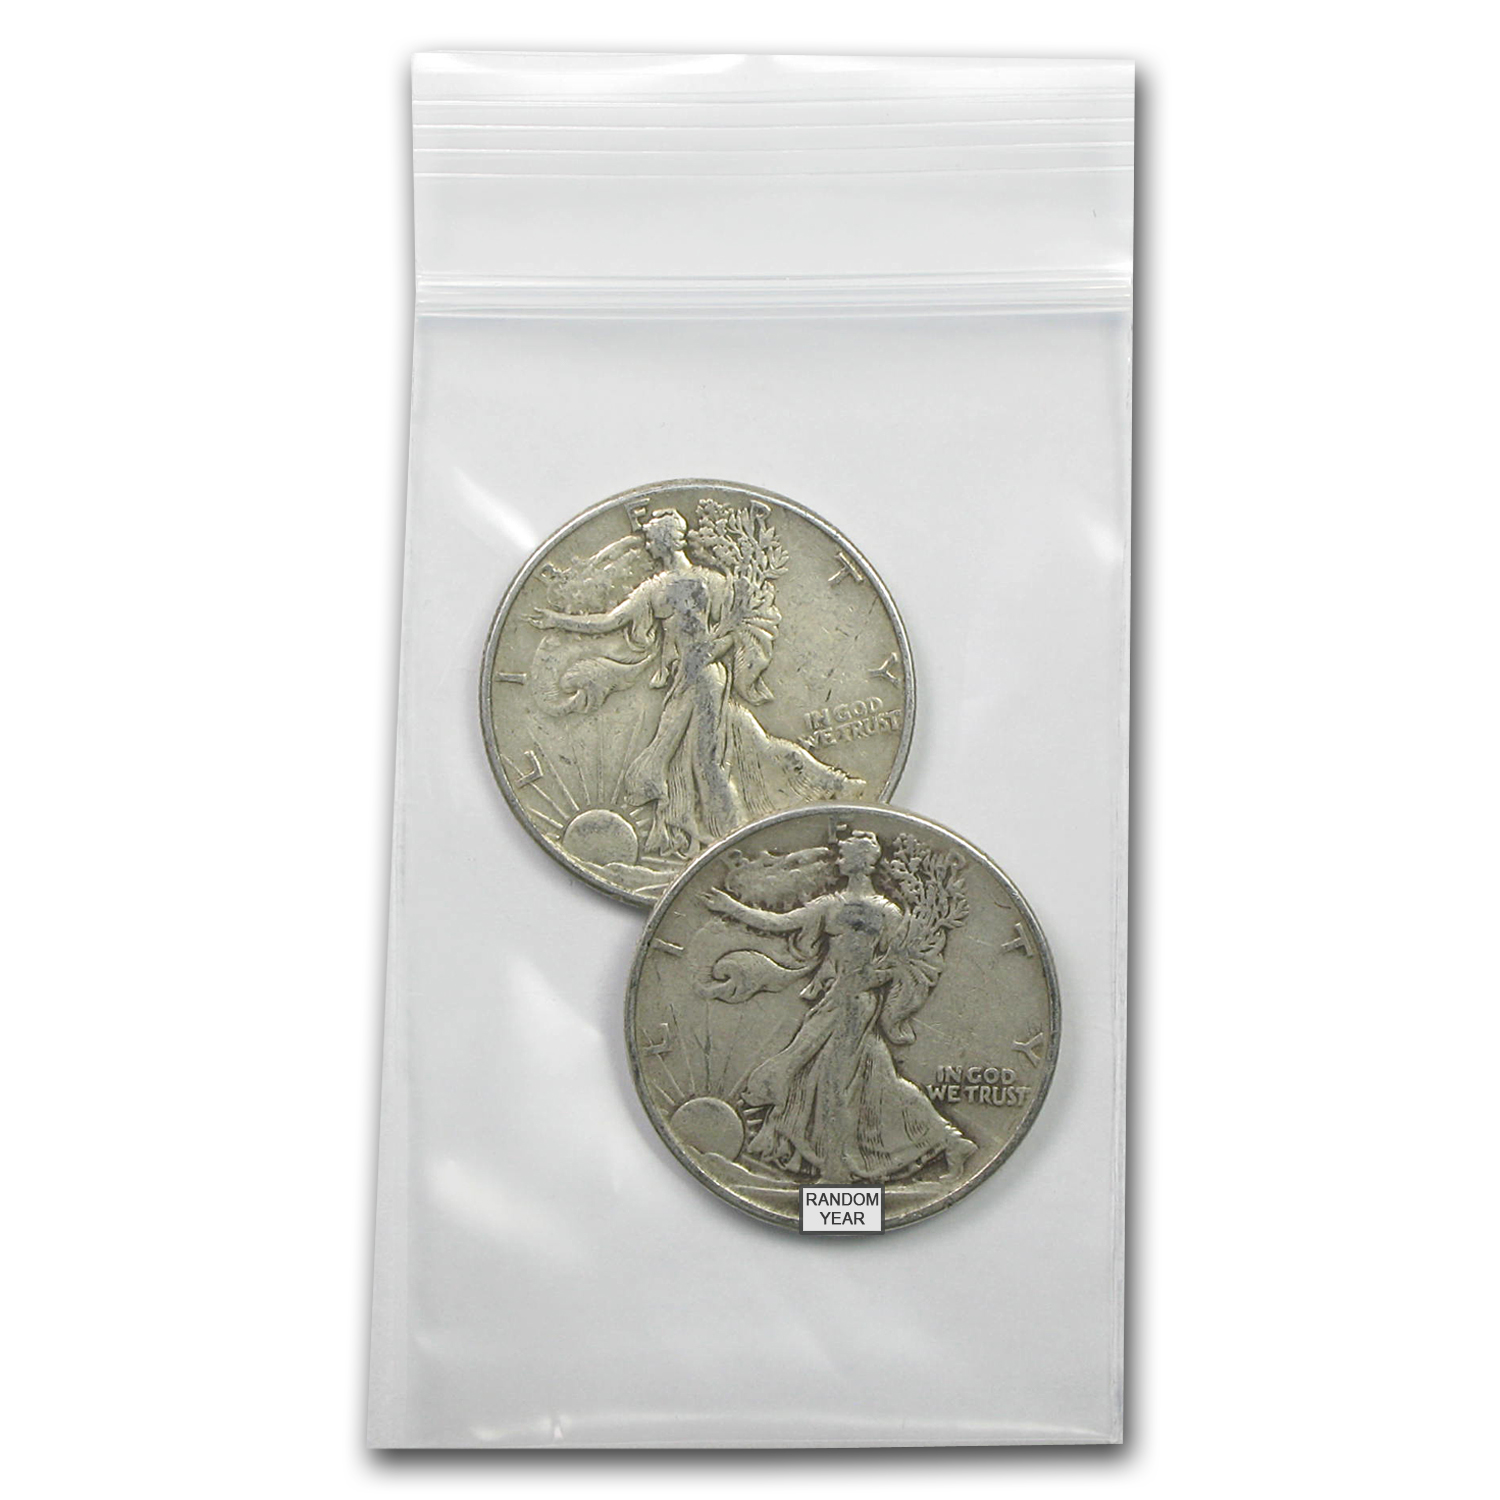 90% Silver Walking Liberty Half-Dollars $1 Face Value Avg Circ